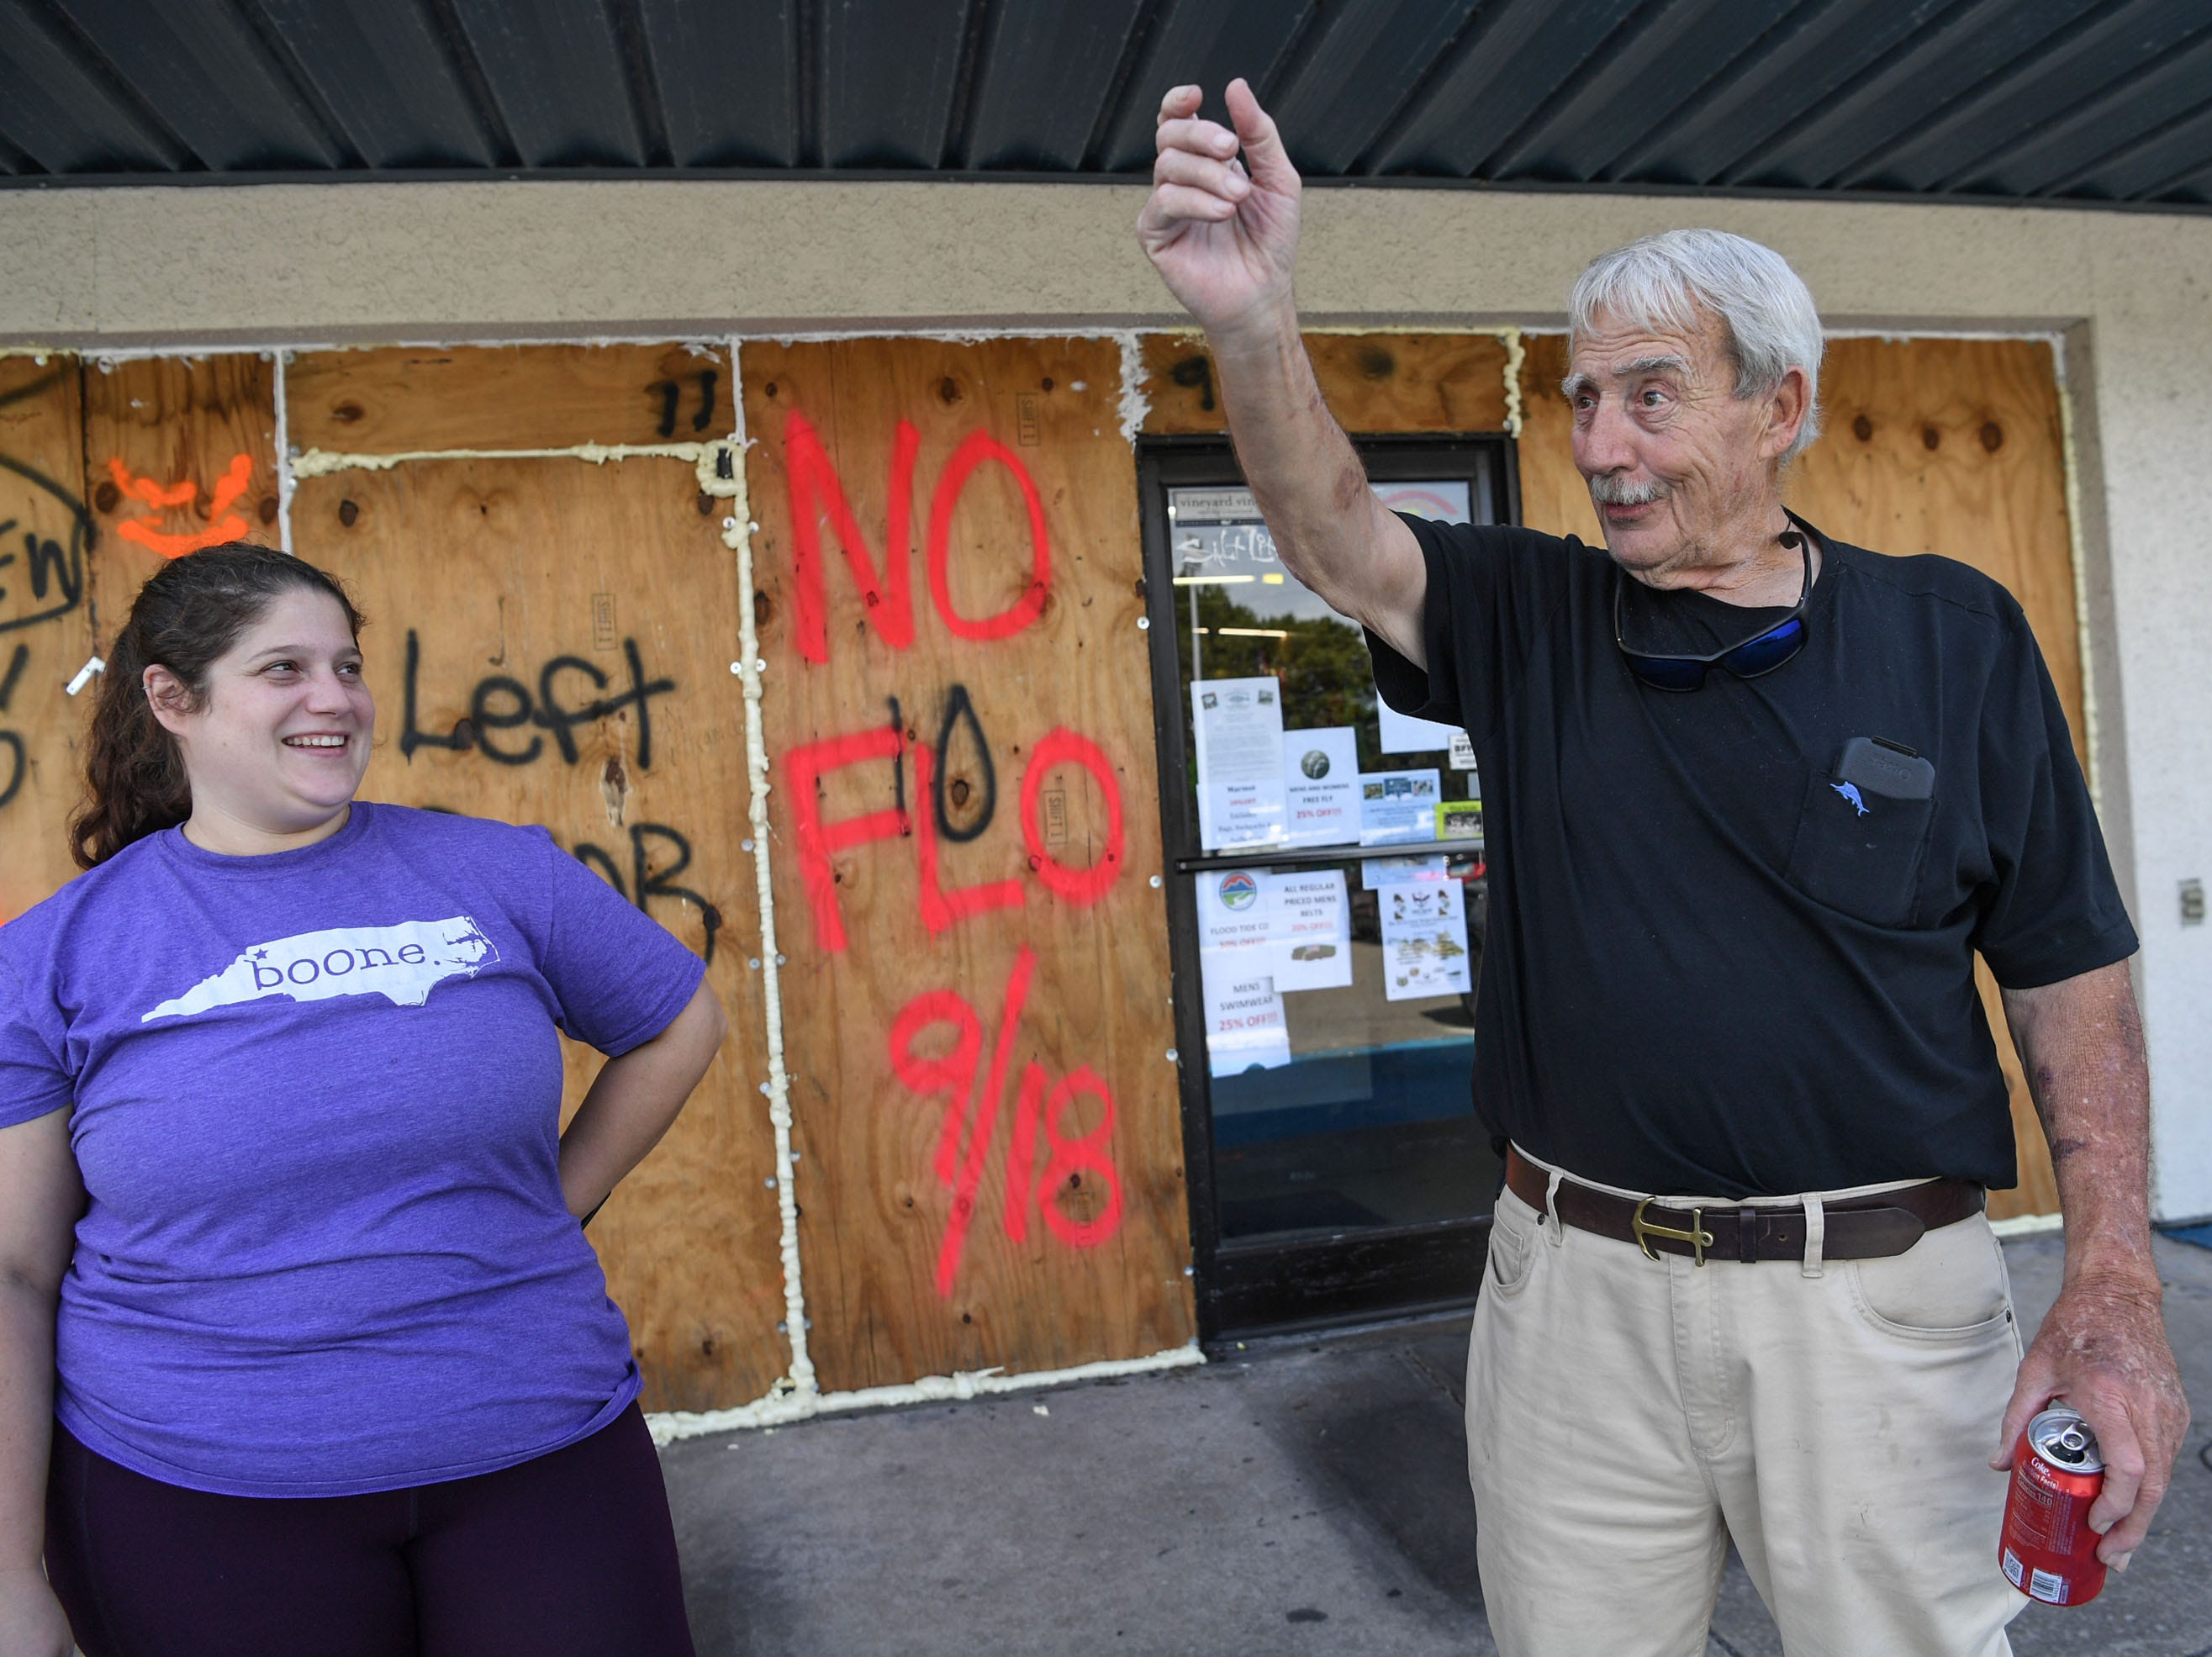 Meredith Reddick, left, and her father Gordon Reddick, owner of Redix store, talks about debris flying through the air and the need for plywood boards cover his windows, on Tuesday, September 11, 2018. Reddick has used the same boards since 1993, and wrote names for each storm since then. Hurricane Florence is expected to arrive in Wilmington, North Carolina late Thursday night through Friday morning. (Ken Ruinard / Greenville News / Gannett USA Today Network / 2018 )